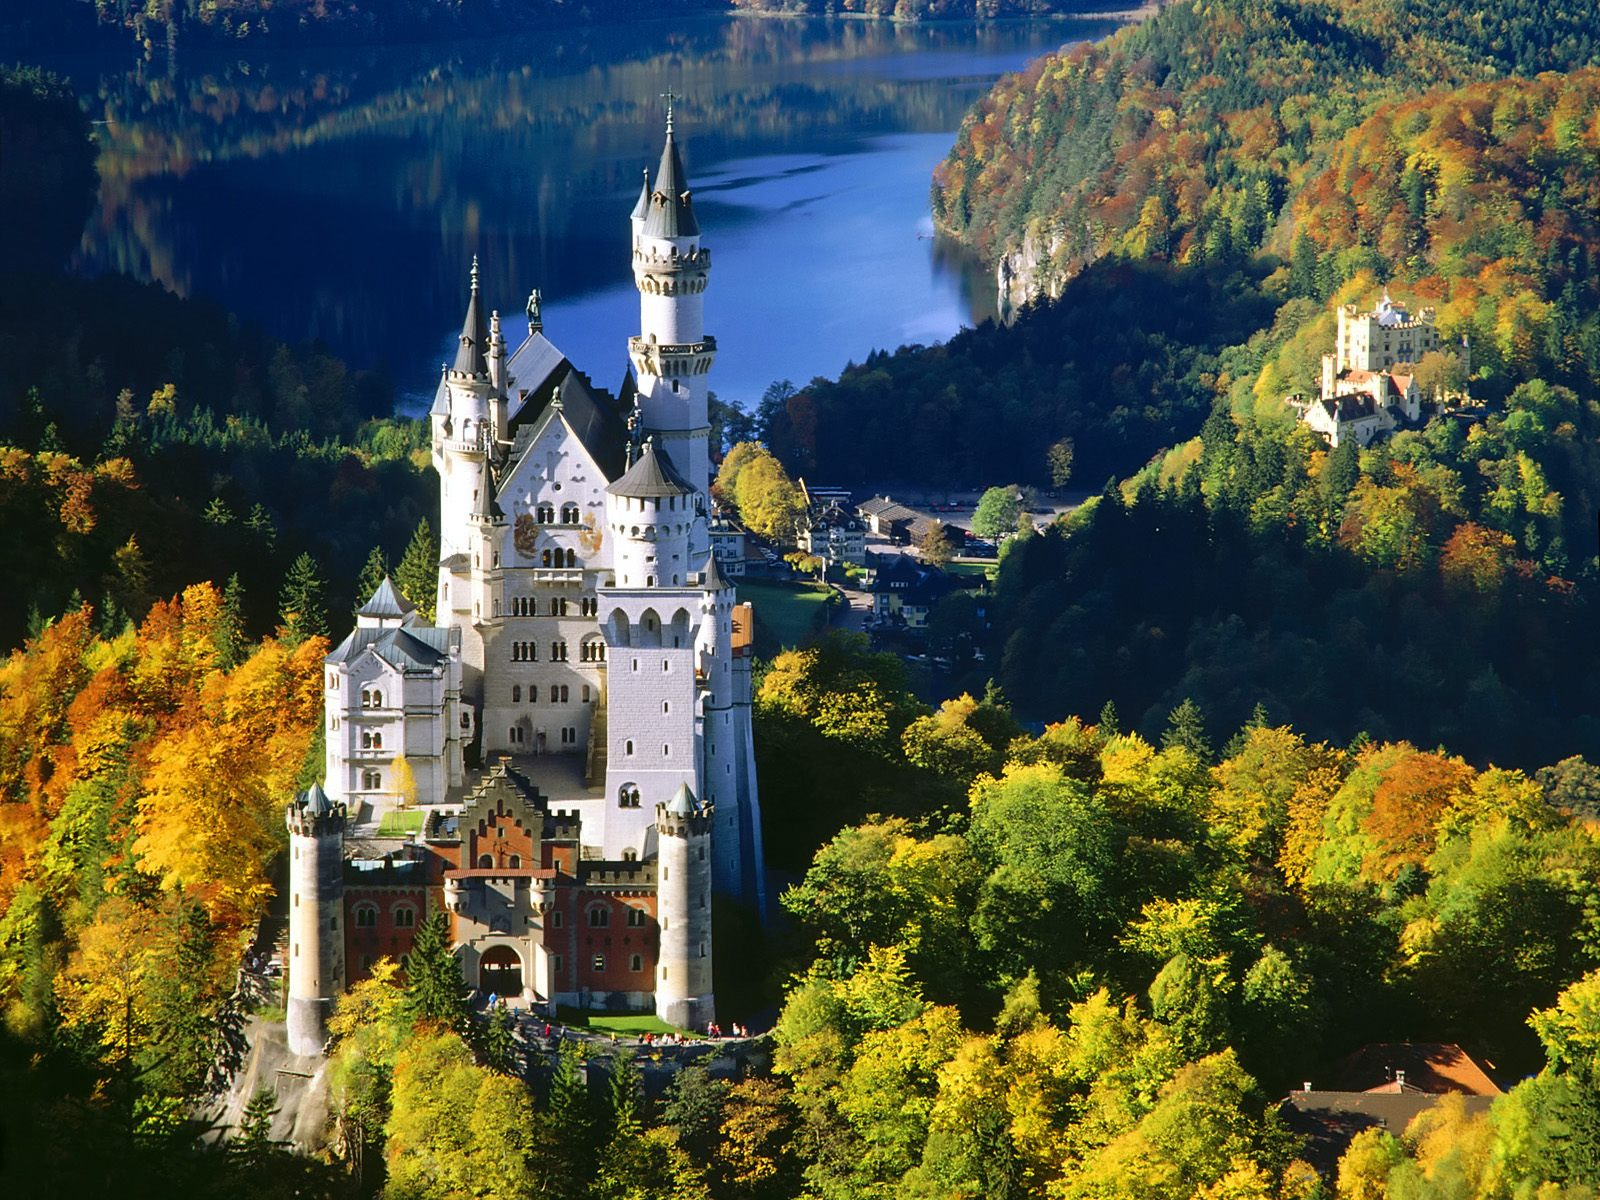 Aerial view of Neuschwanstein Castle